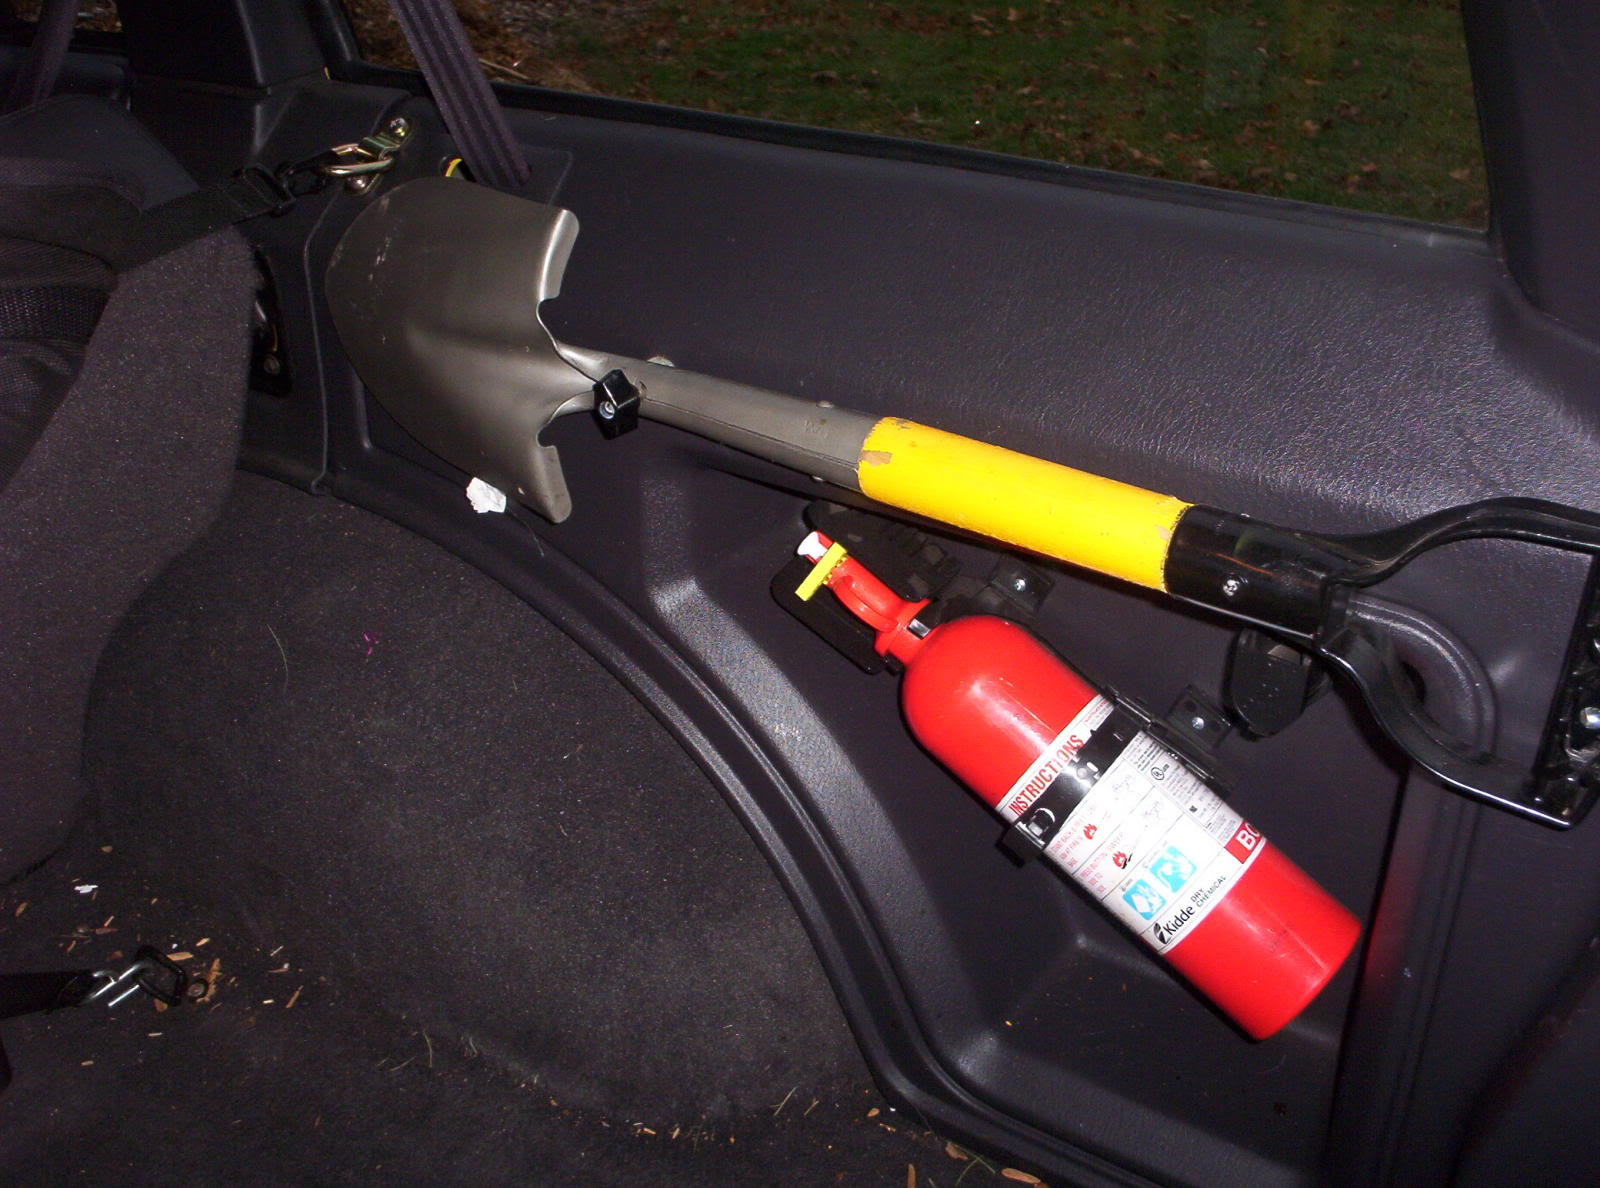 Lowes Charleston Wv Fire Extinguisher And Flashlight Mounting - Page 2 - Jeep